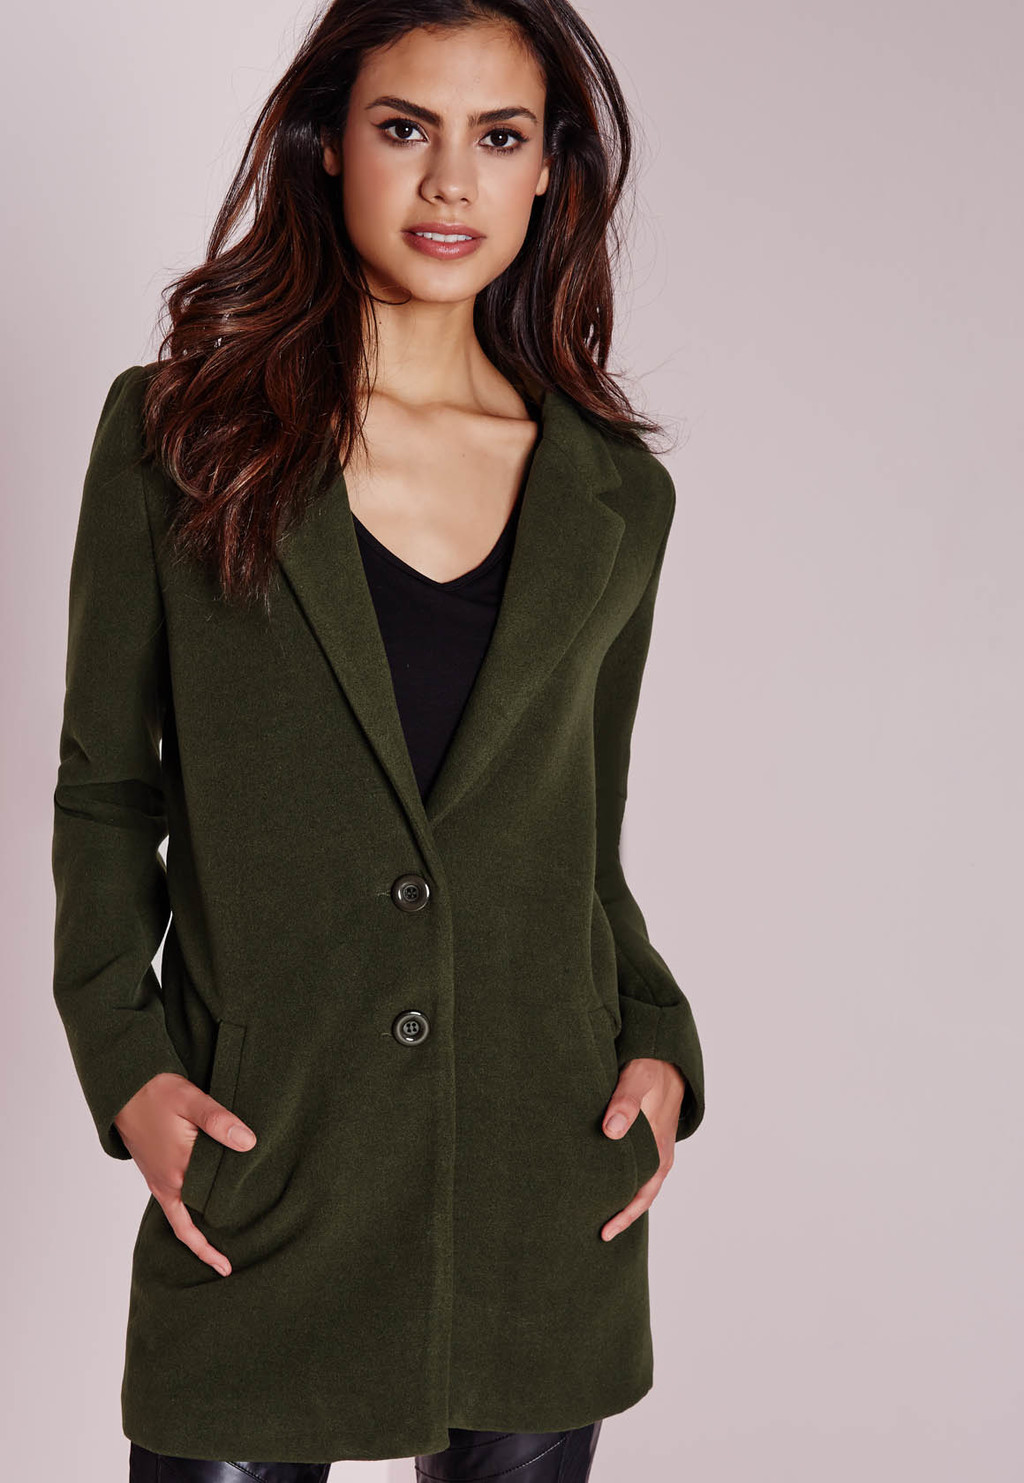 Short Faux Wool Coat Khaki, Beige - pattern: plain; style: single breasted; collar: standard lapel/rever collar; length: mid thigh; predominant colour: khaki; occasions: casual, work, creative work; fit: tailored/fitted; fibres: wool - 100%; sleeve length: long sleeve; sleeve style: standard; collar break: medium; pattern type: fabric; texture group: woven light midweight; season: a/w 2015